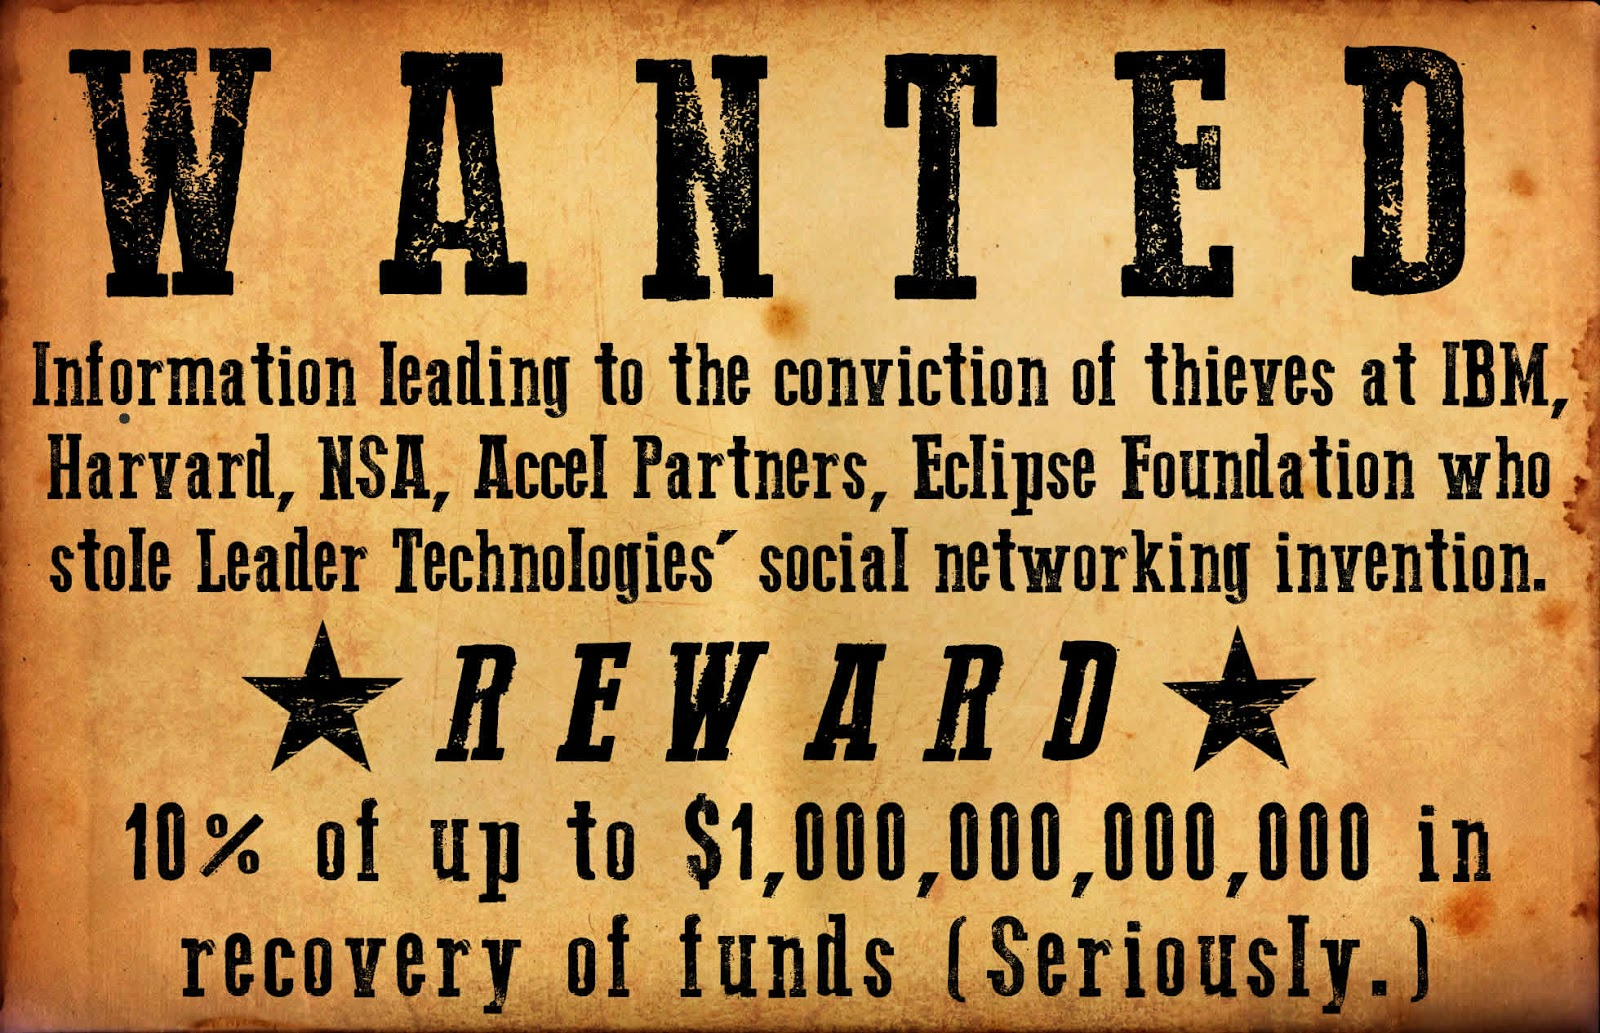 WANTED: Information leading to the conviction of thieves at IBM, Harvard, NSA, Accel Partners, Eclipse Foundation who stole Leader Technologies' social networking invention. REWARD: 10% of up to $1 trillion in recovery of funds (Seriously.)